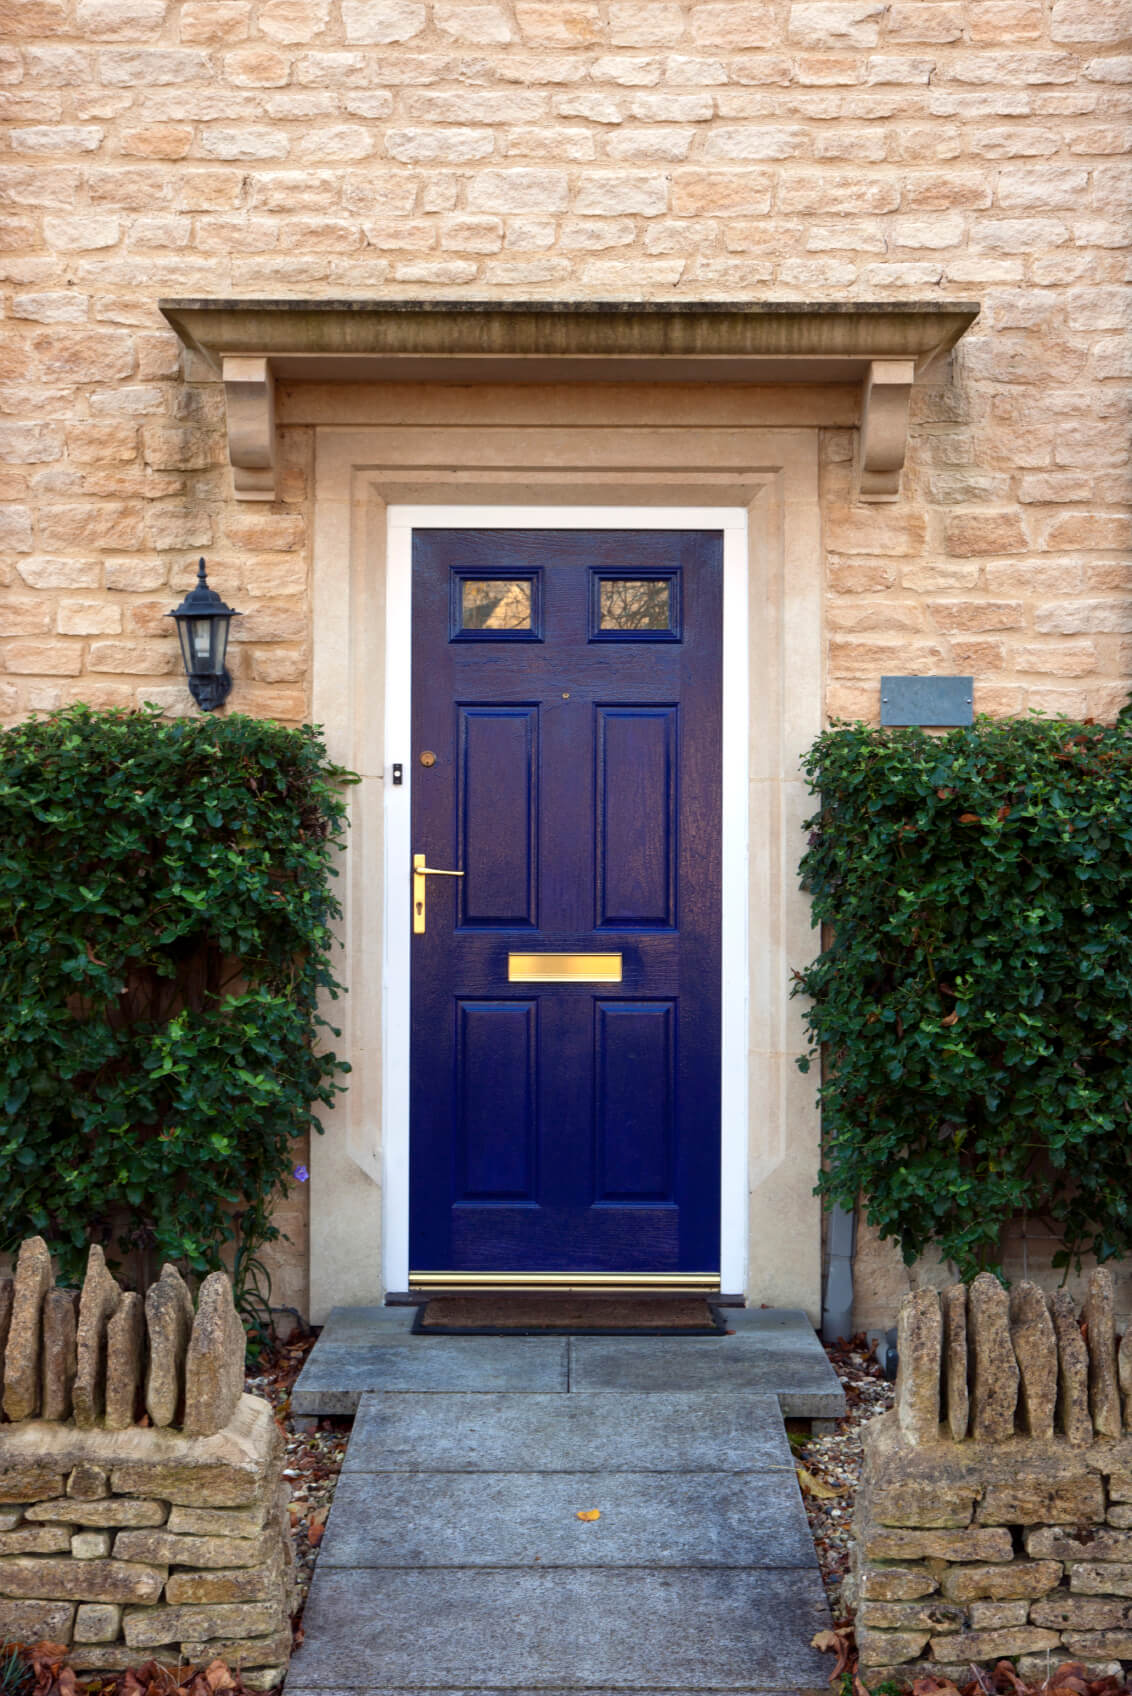 Almost similar to the above front door, this blue door with brass handle and plate is paired with a brown bordered rug and a traditional outdoor sconce mounted on the stone brick wall.